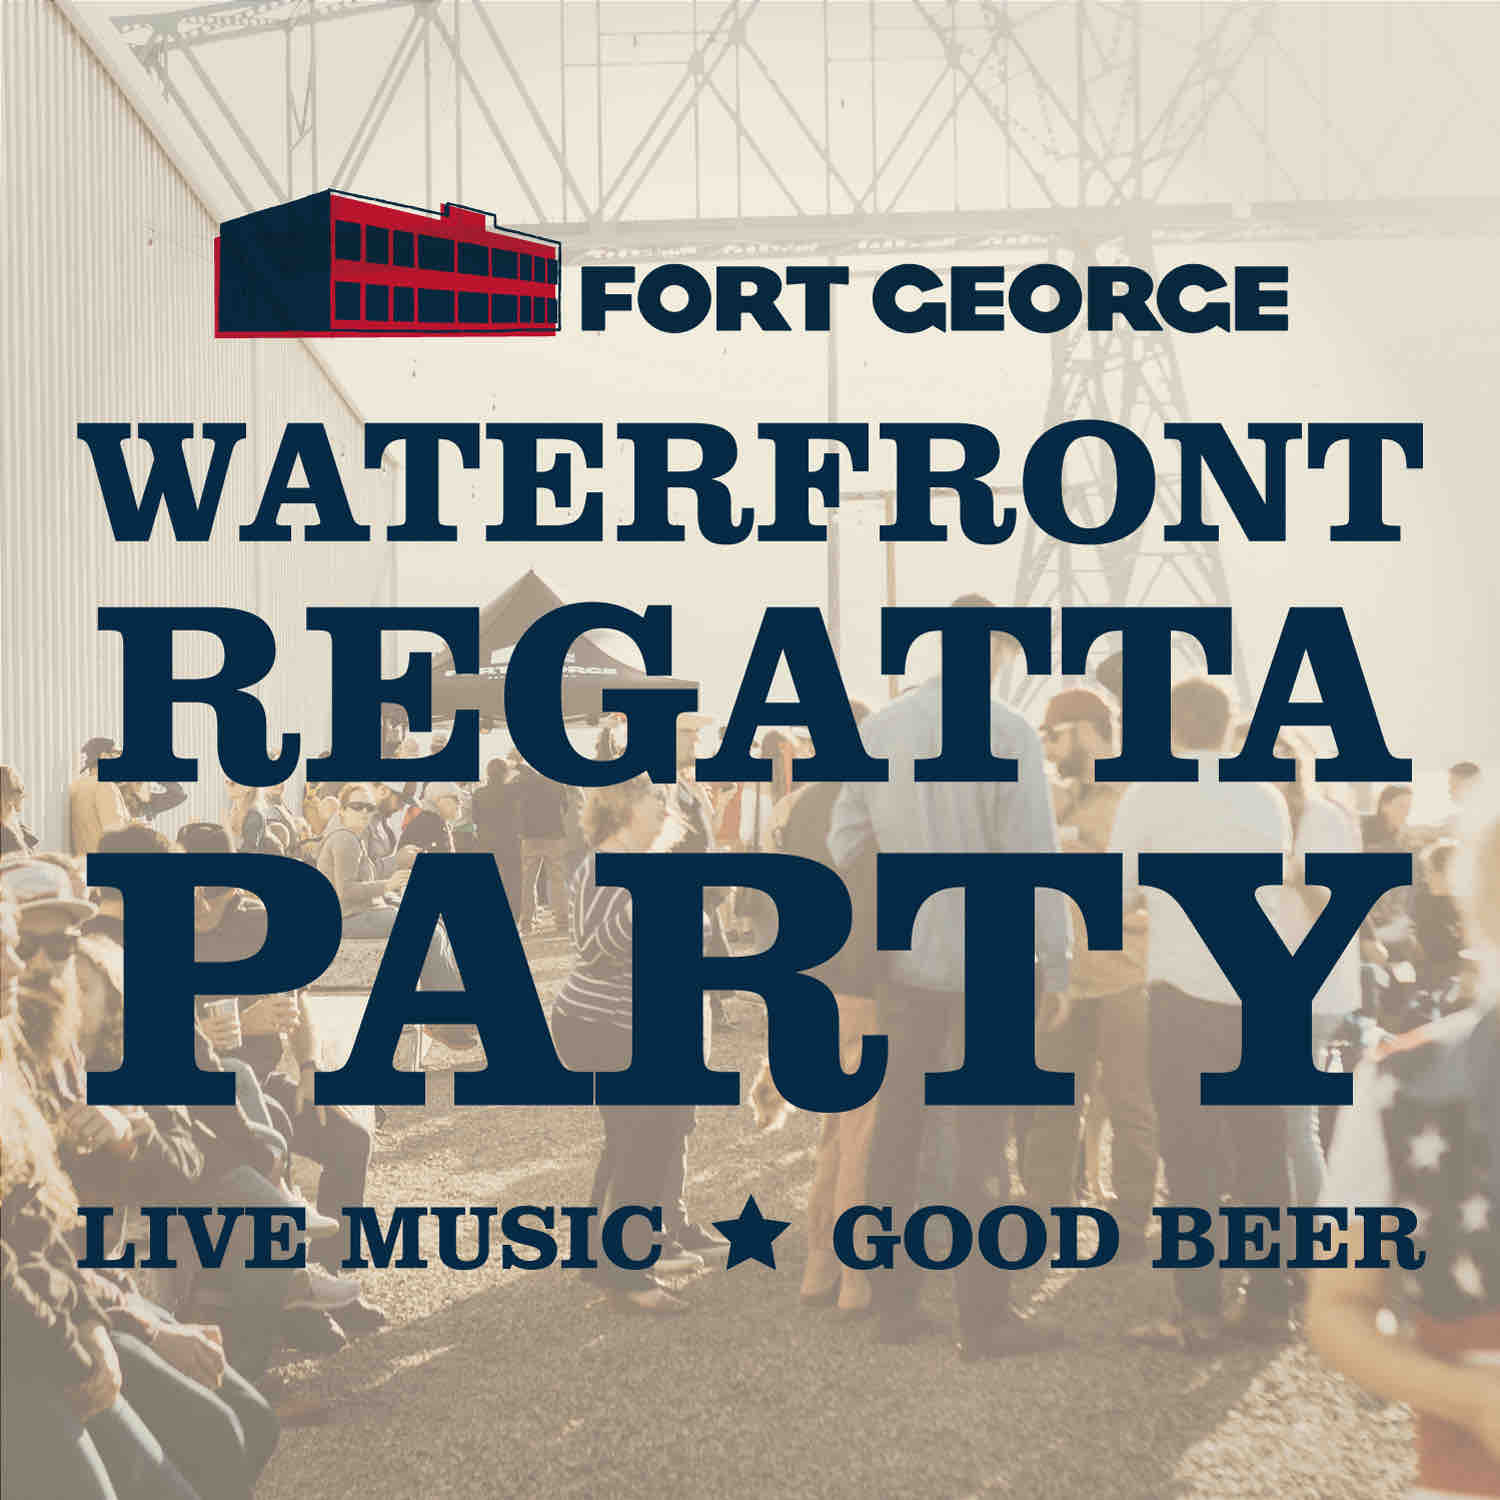 Fort George Brewery Waterfront Regatta Party 2021